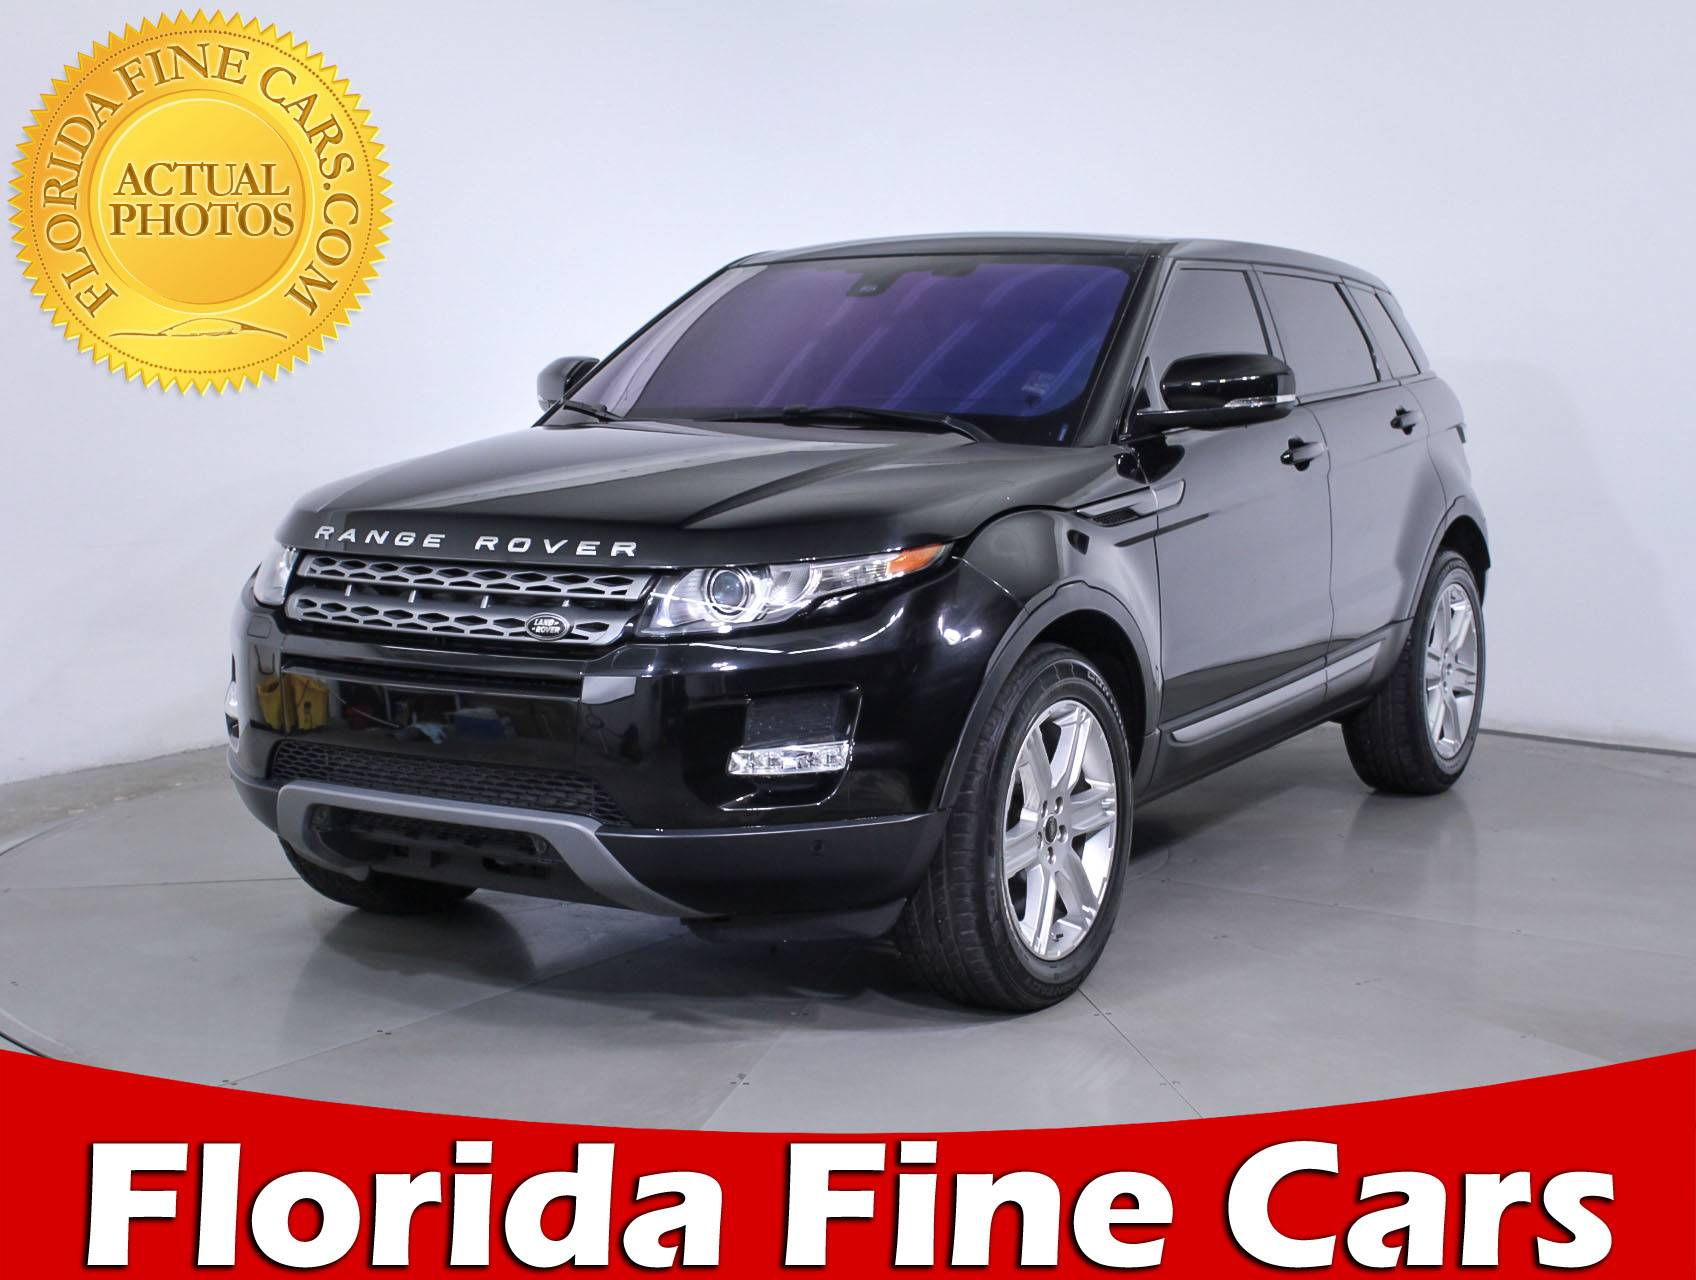 autobiogprahy re jamesedition sale cars dynamic landrover one of rover sv white ohio first in range the for on land